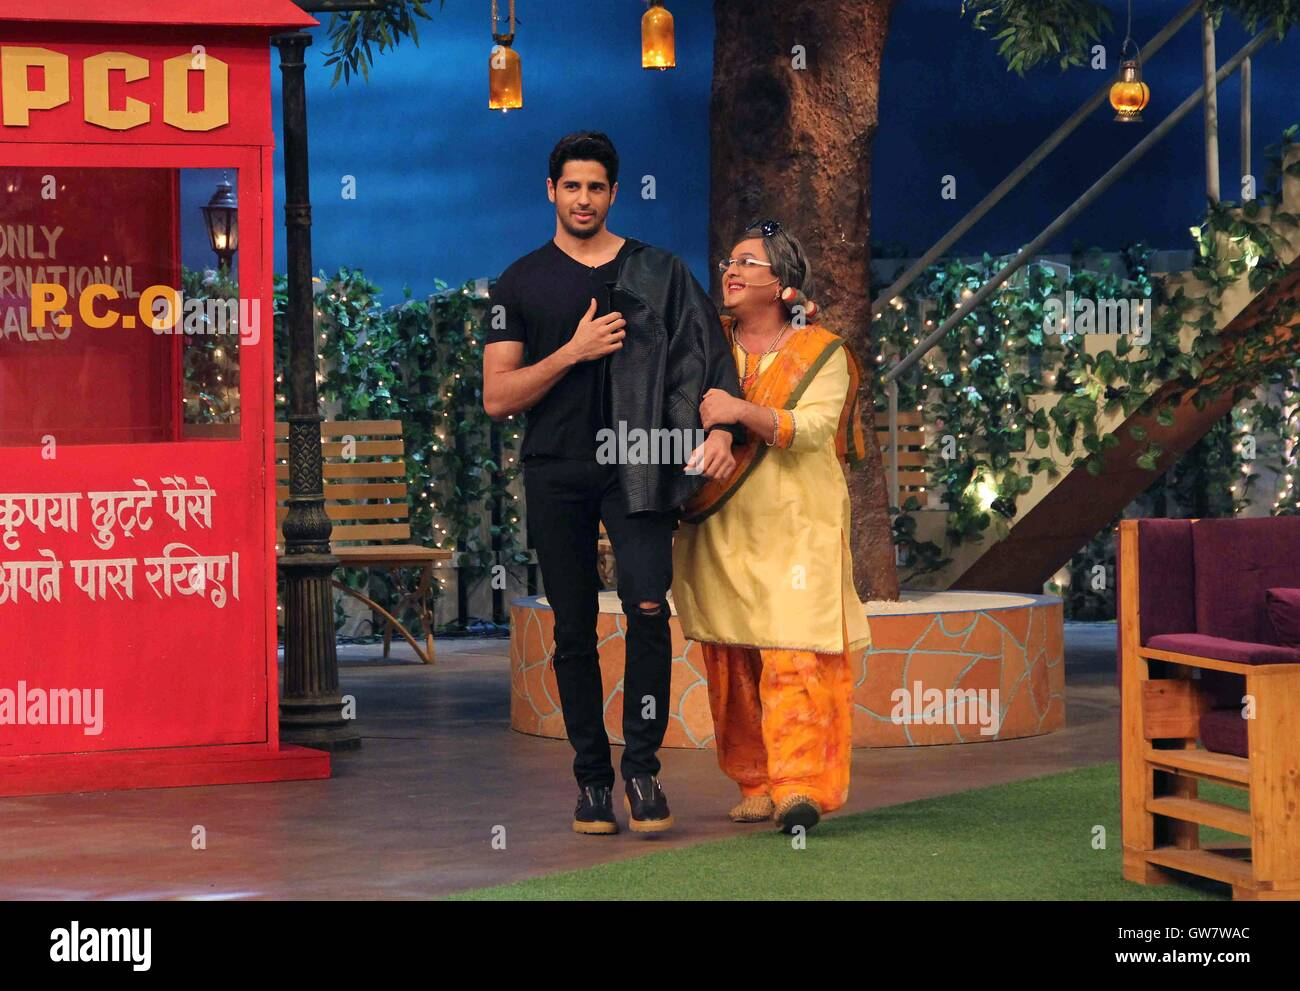 Bollywood actor Sidharth Malhotra comedian Ali Asgar promotion film